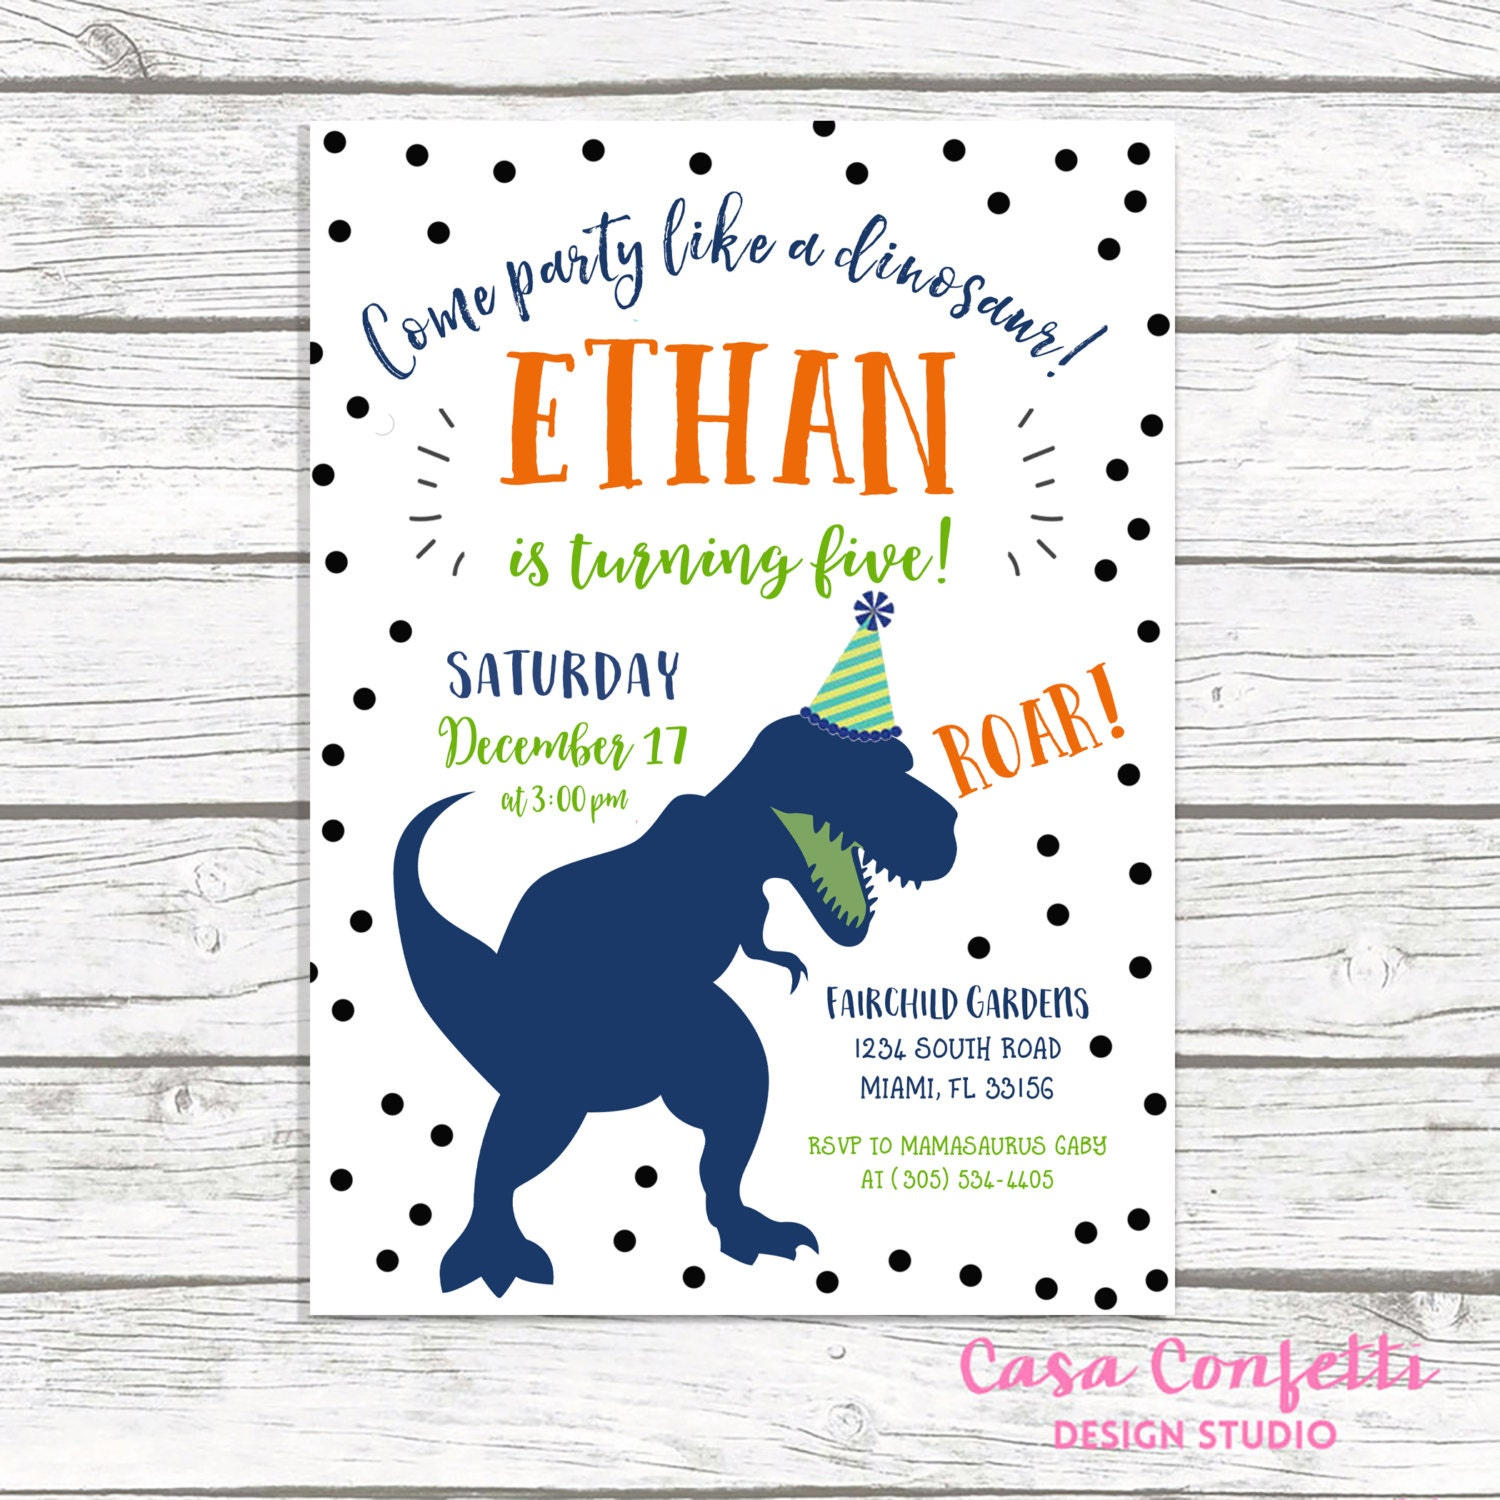 Dinosaur Birthday Invitation, Dinosaur Invitation, Dinosaur Birthday ...